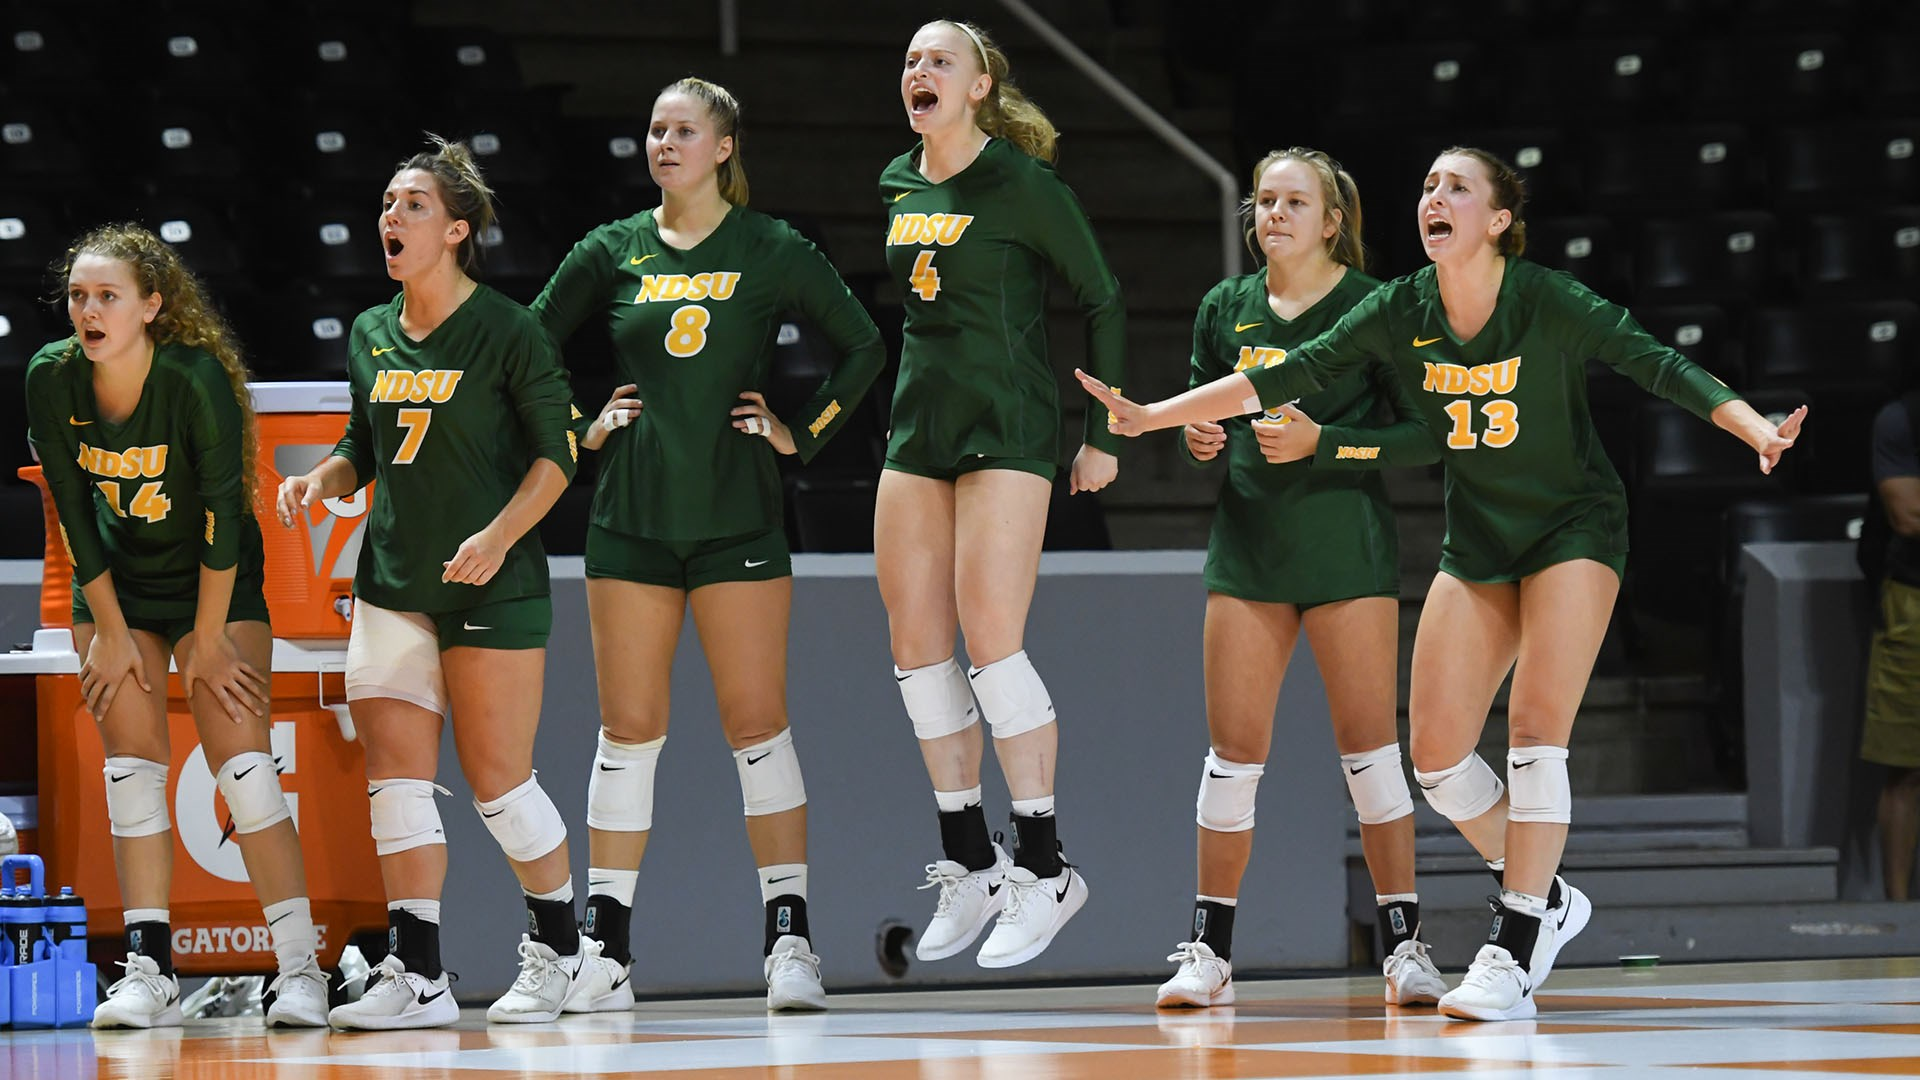 Ndsu Entertains Purdue Fort Wayne Western Illinois In The Bentson Bunker Fieldhouse Ndsu